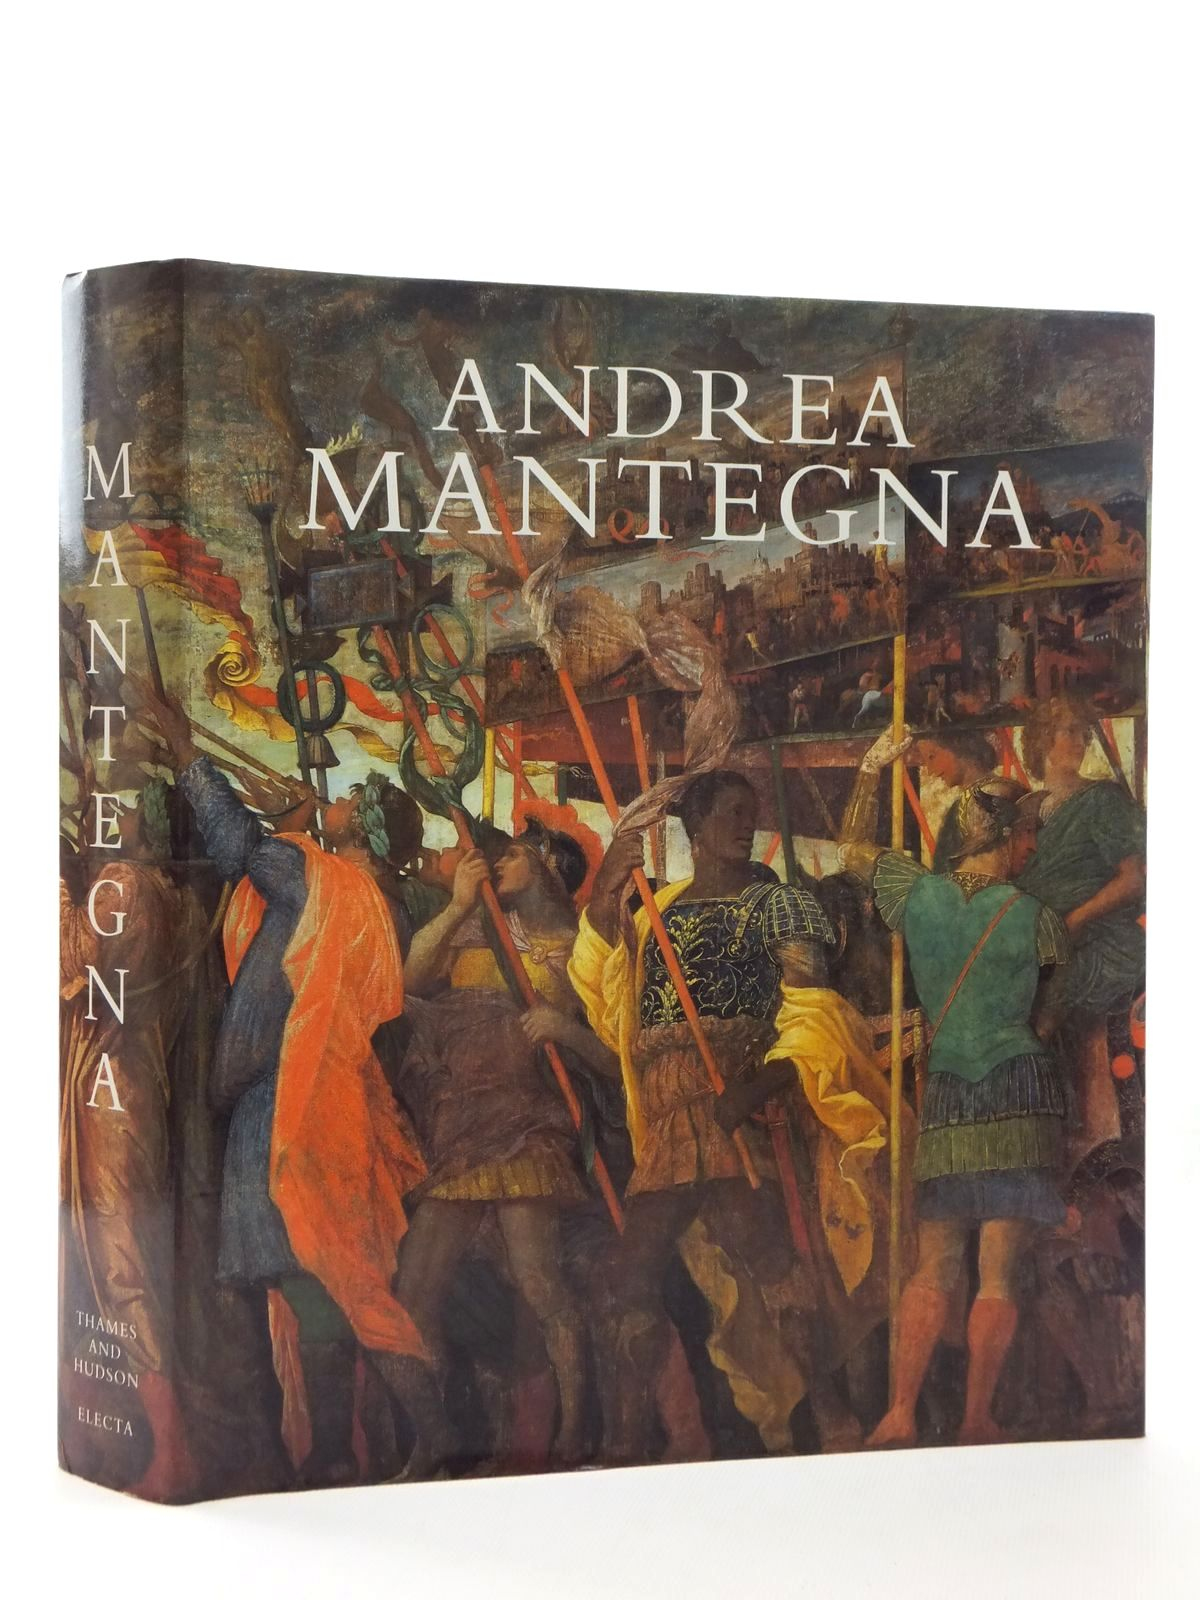 Photo of ANDREA MANTEGNA written by Martineau, Jane illustrated by Mantegna, Andrea published by Thames and Hudson, Electa (STOCK CODE: 1815018)  for sale by Stella & Rose's Books